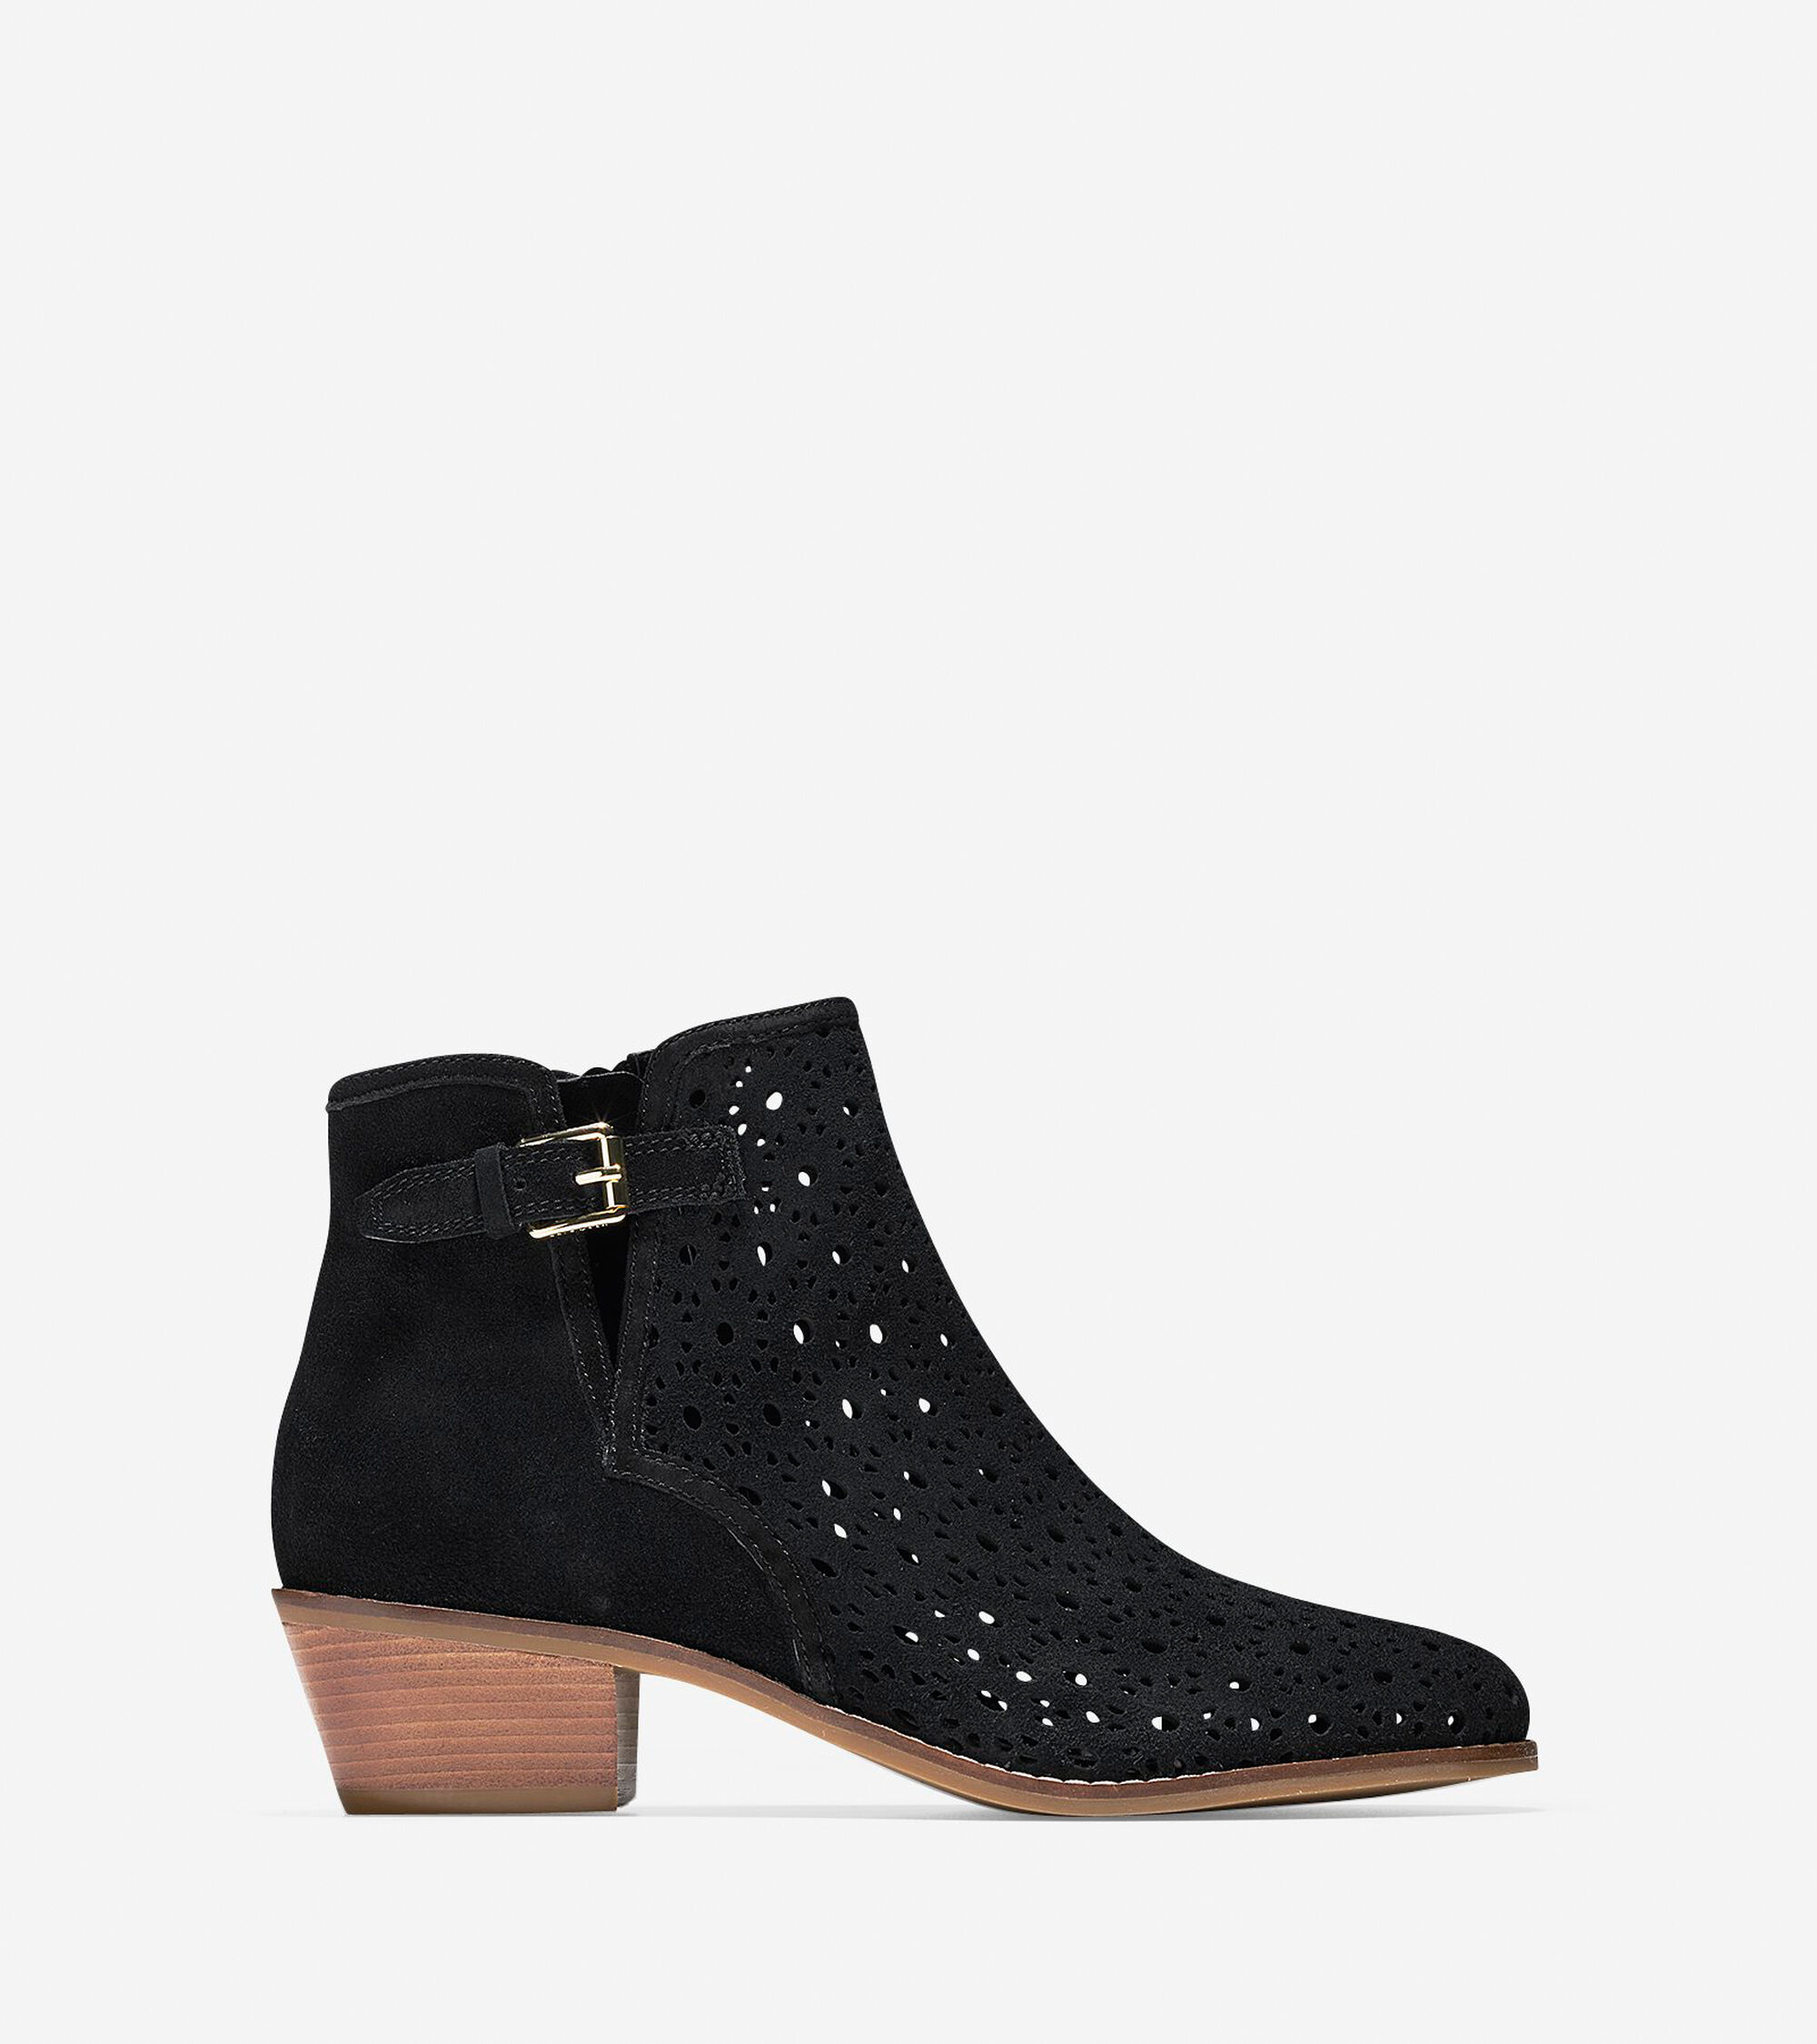 Cole Haan Womens Willette Perforated Bootie